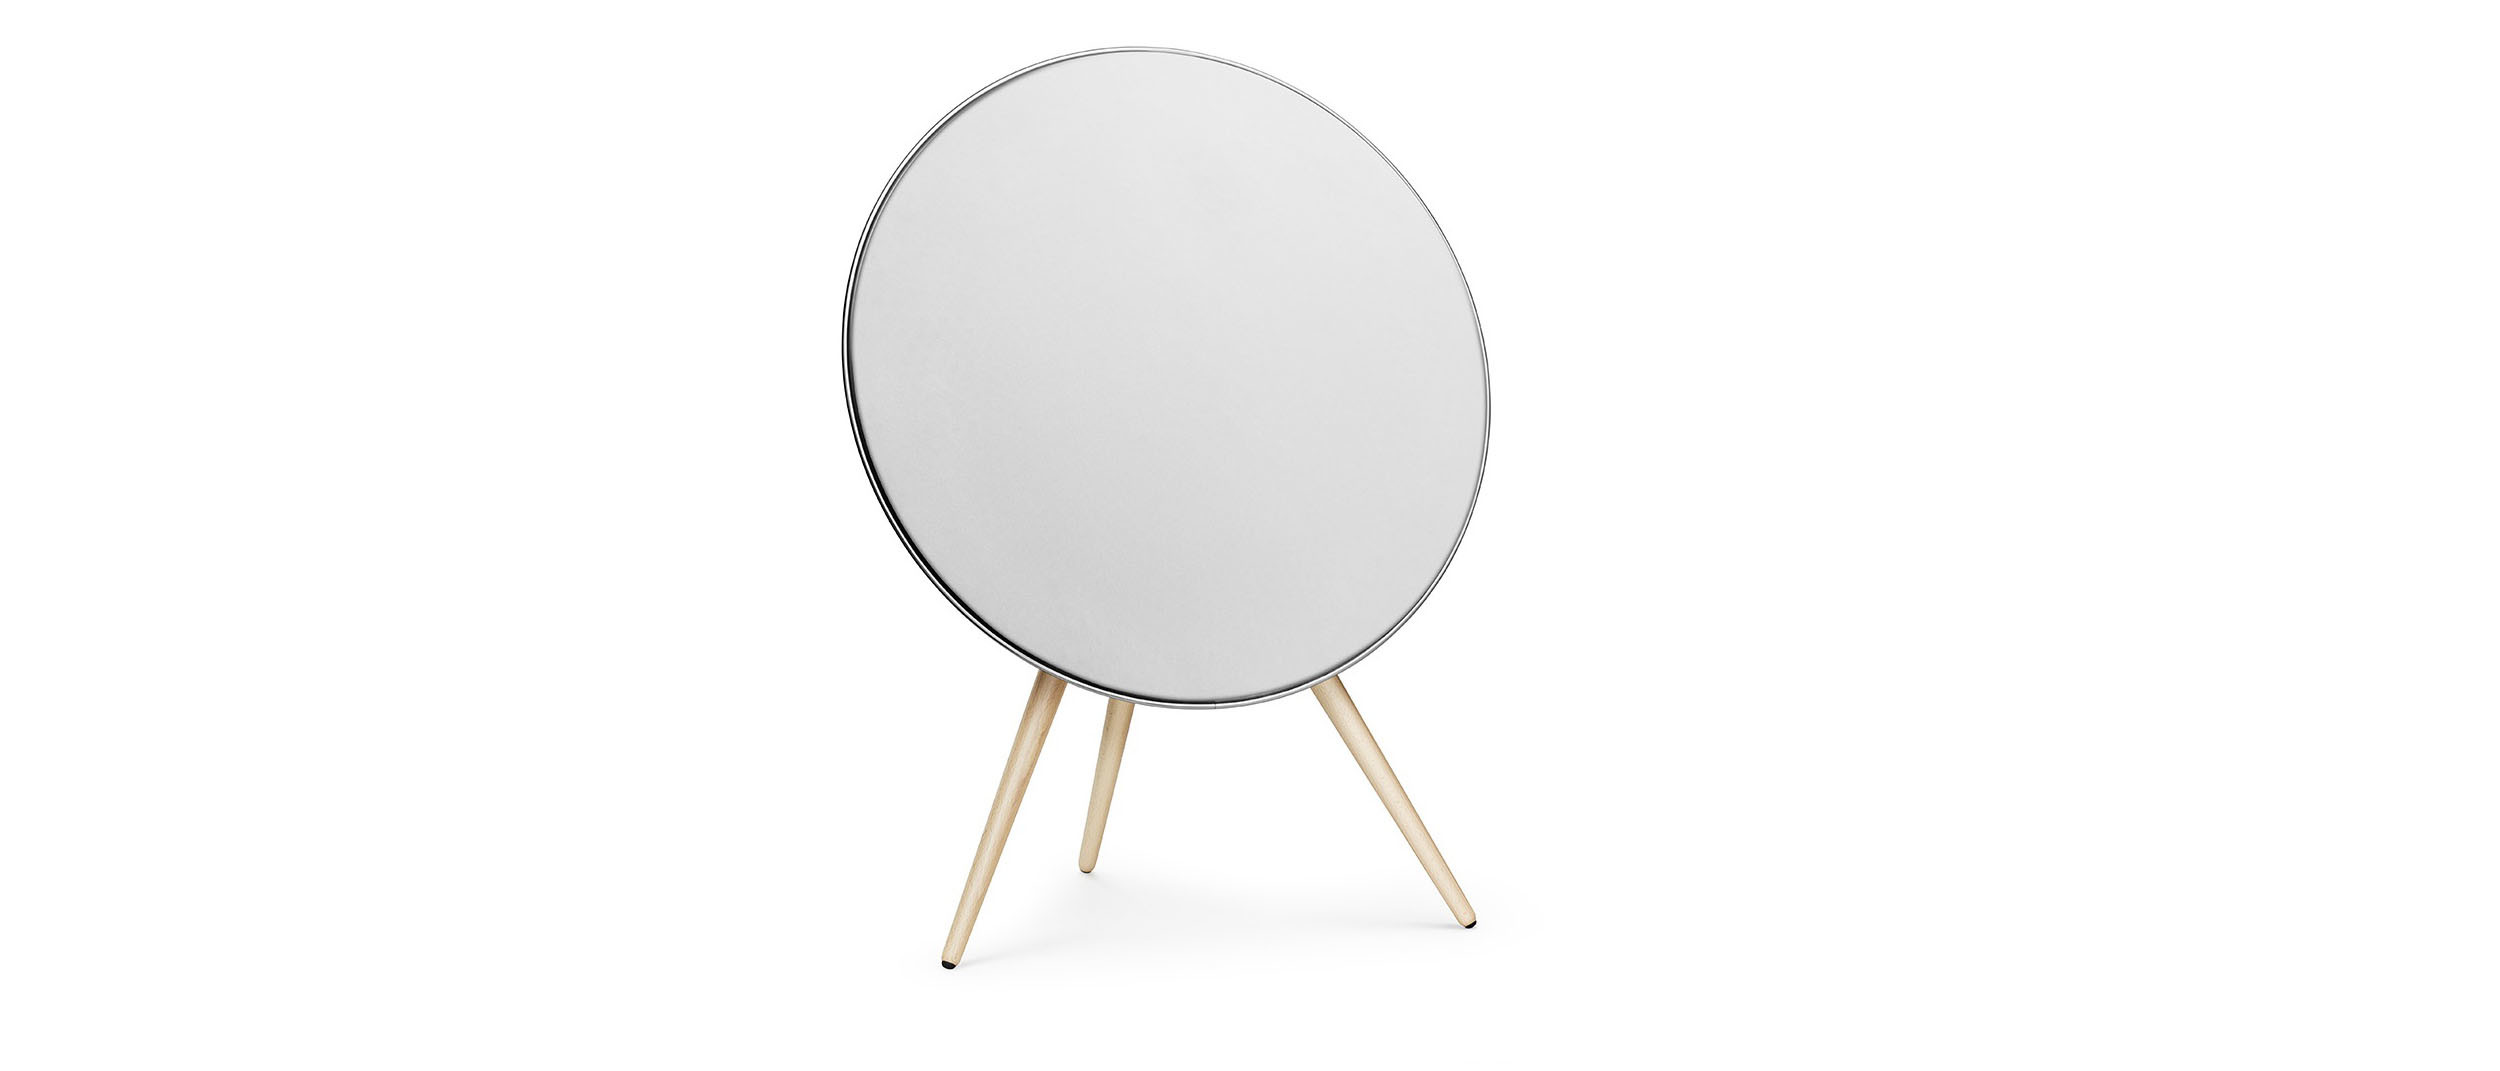 anh beoplay a9 trang